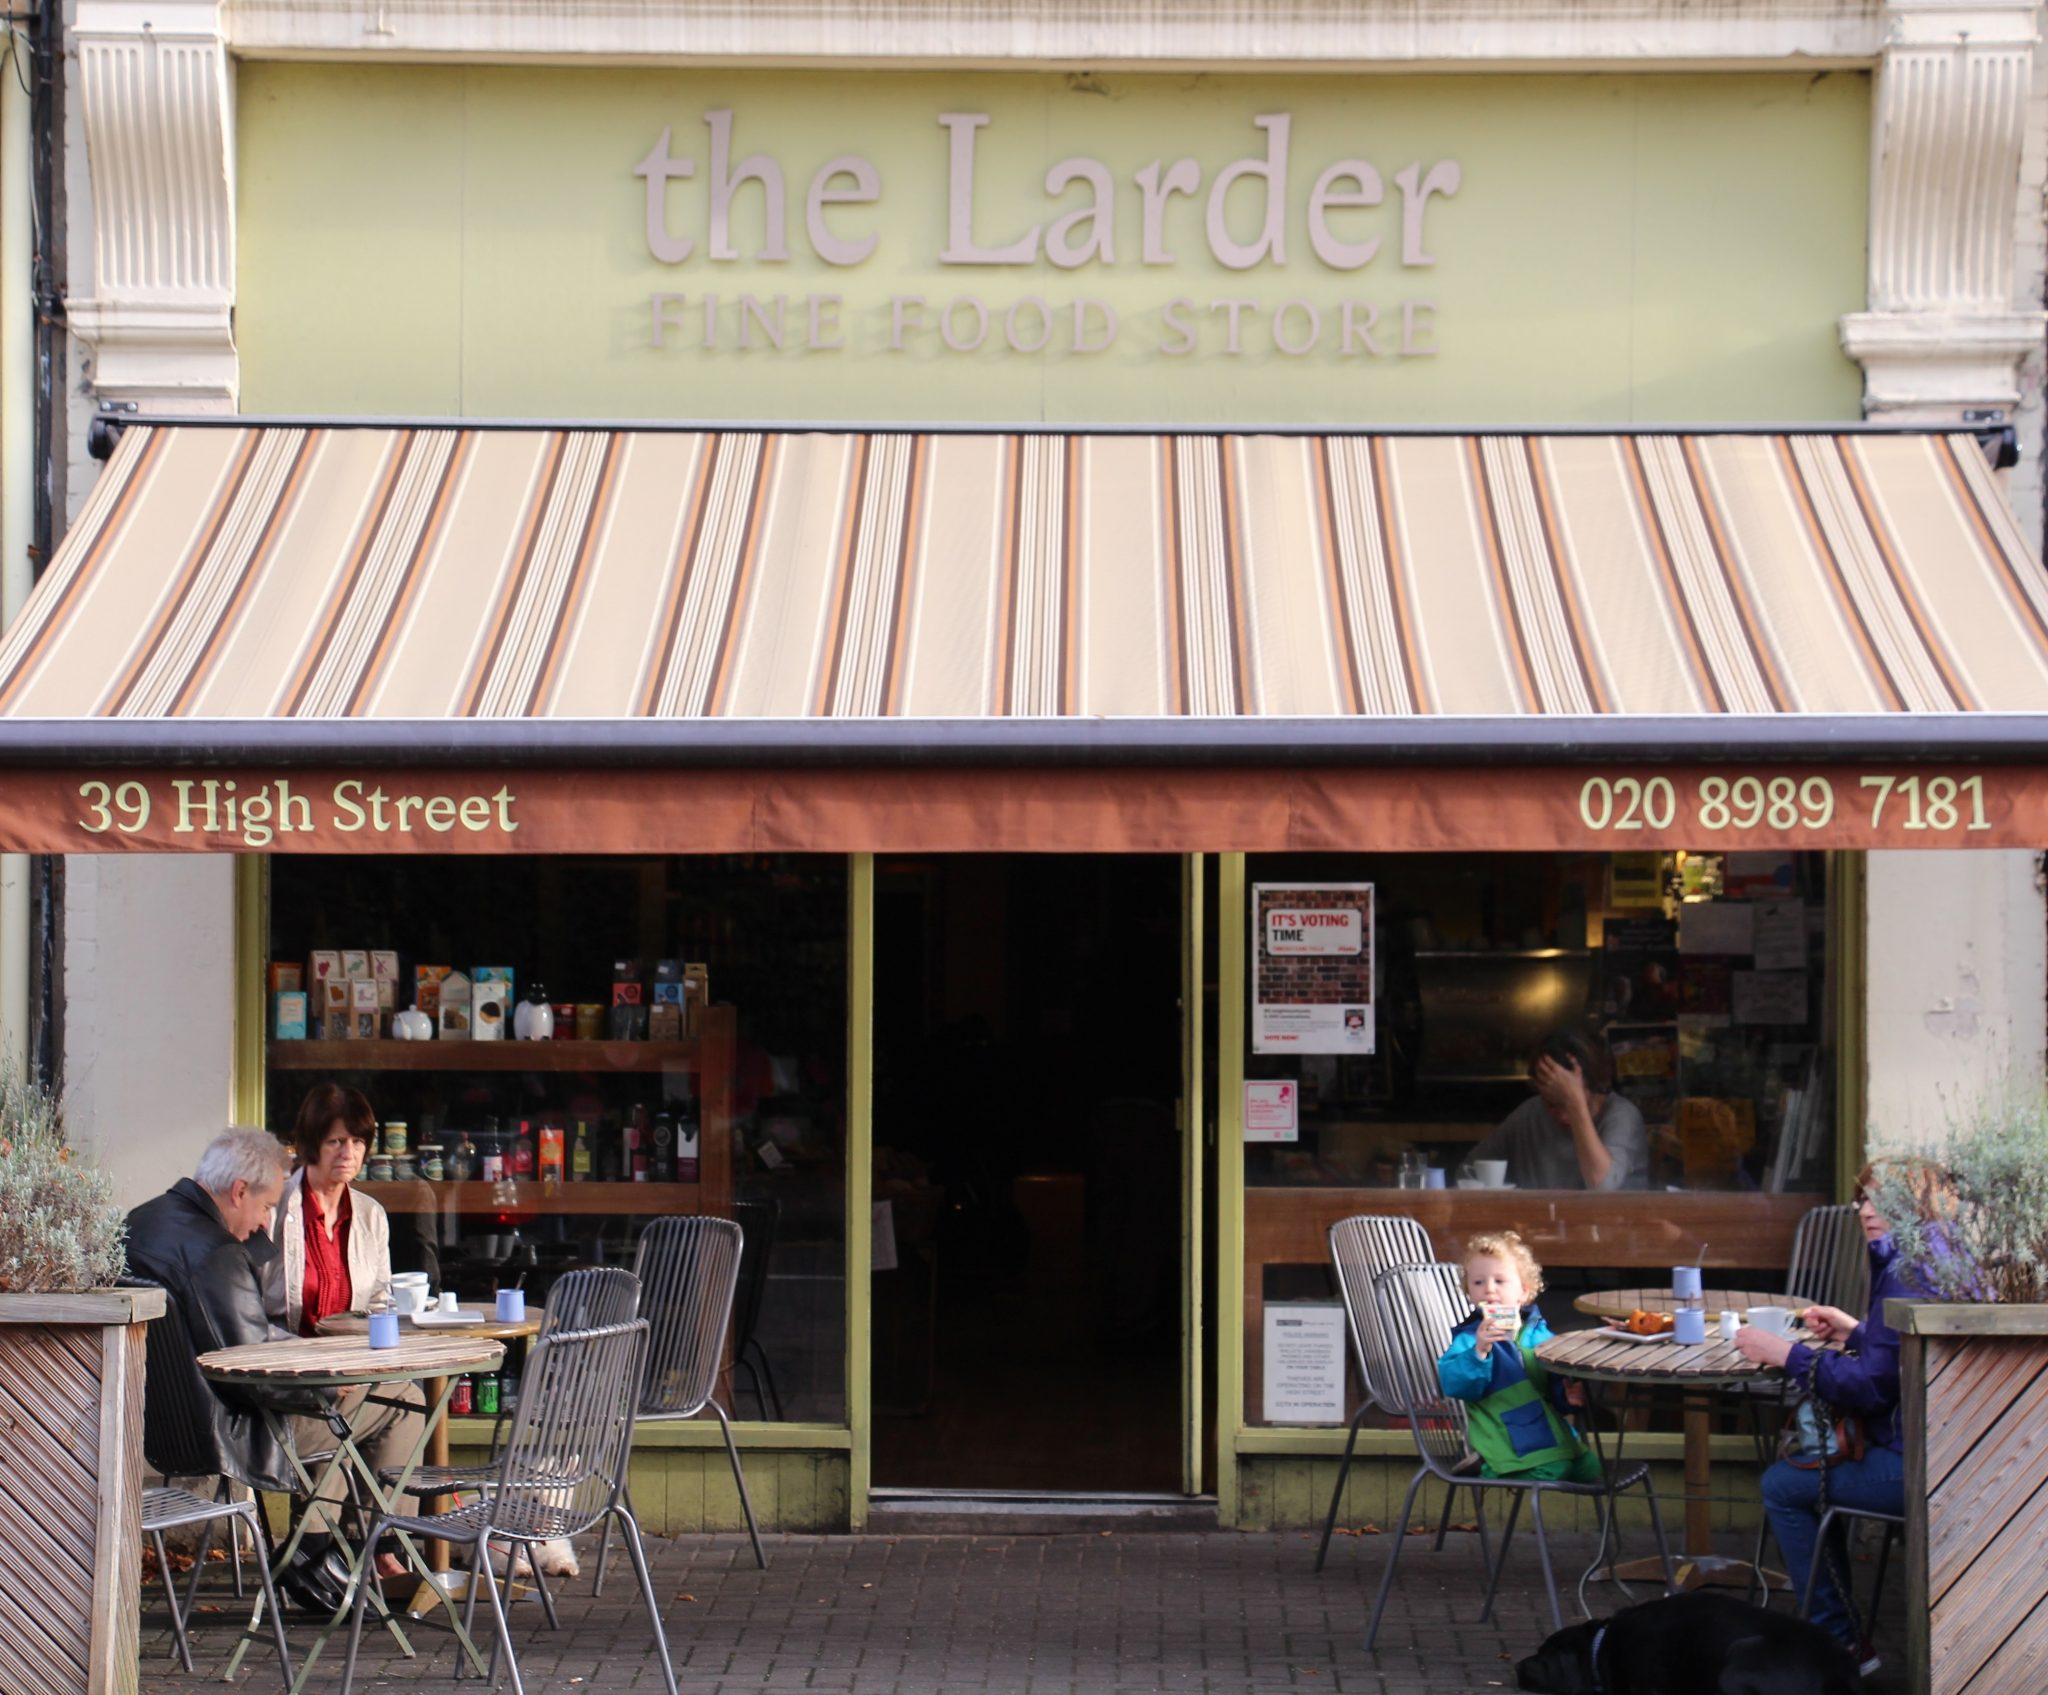 About the Larder